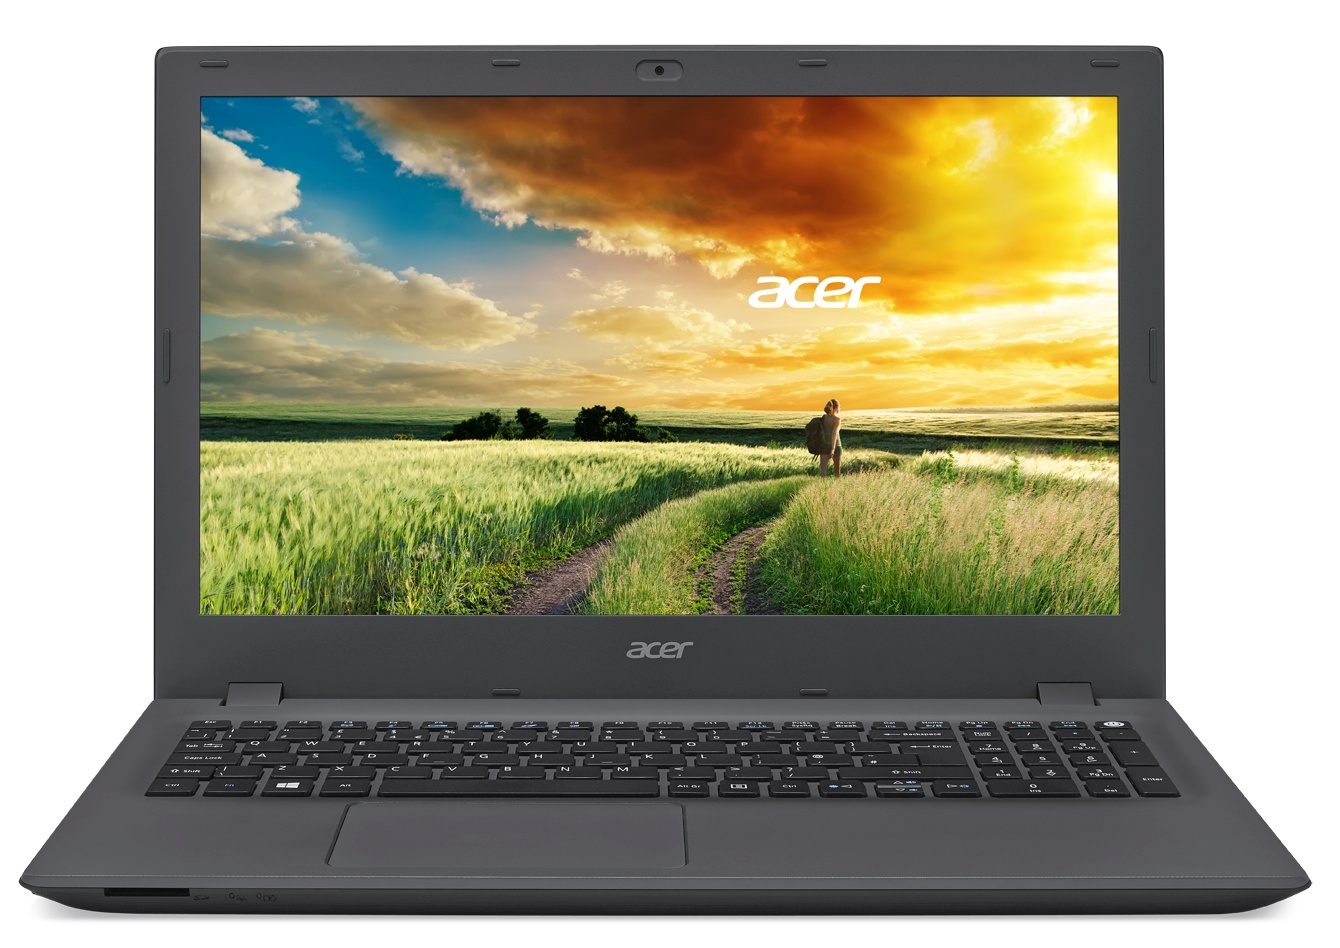 "Acer Aspire E 15 (E5-573G-504H) i5-5200U/4 GB + N/1TB + N/DVDRW/GeForce 940M 2GB/15.6"" HD matný/BT/W10 Home/Charcoal Gray"